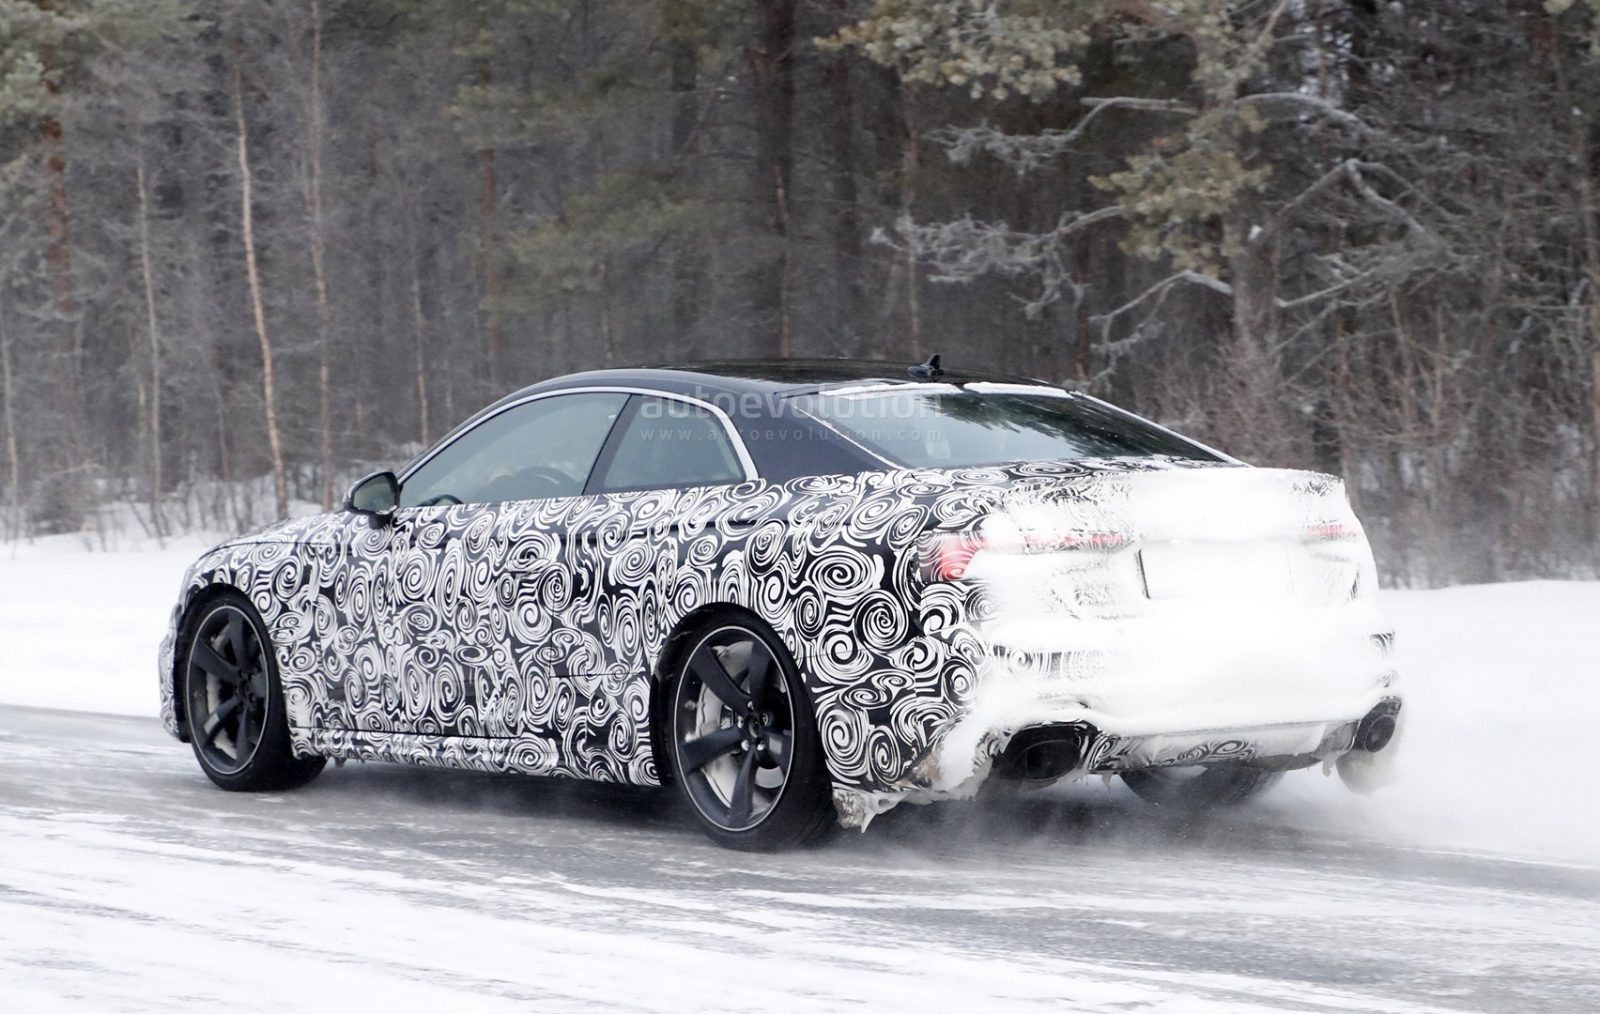 2018-audi-rs5-coupe-winter-testing-with-450-hp-600-nm-twin-turbo-v6_6